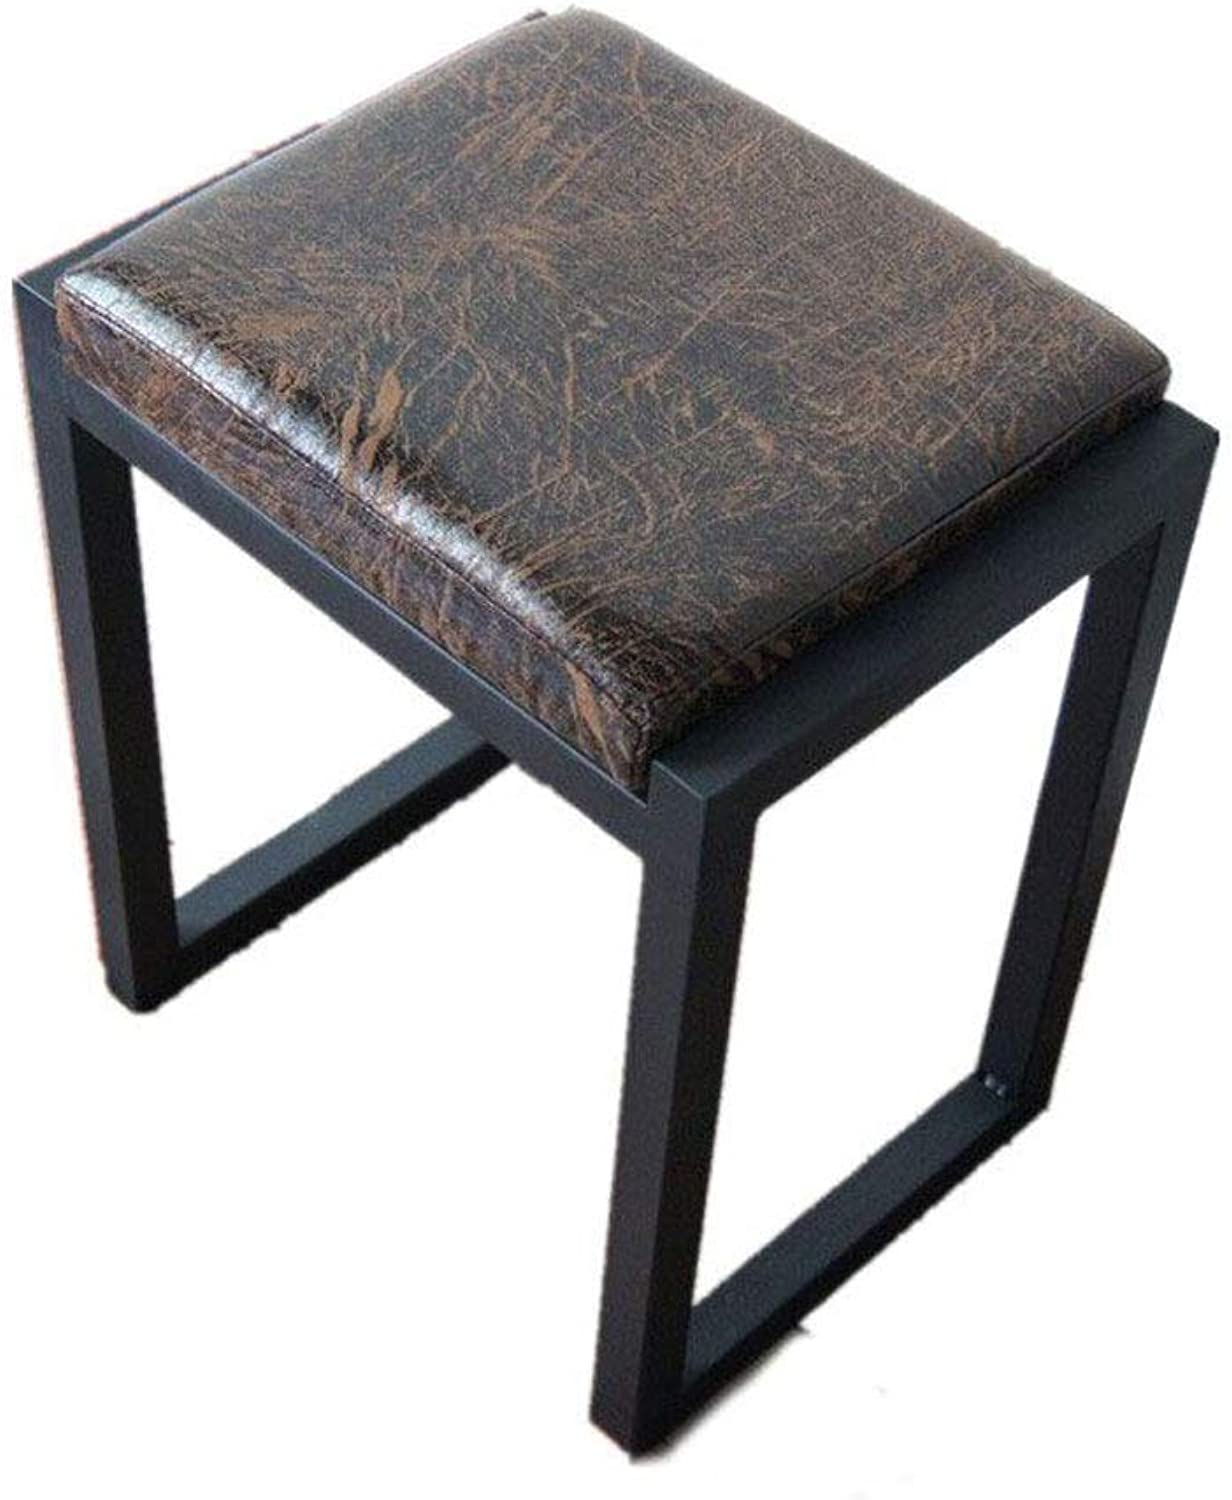 American Retro Metal Leather Stool Square Stool Bedside Stool Dressing Stool Makeup Bench Outdoor Stool Lounge Chair (Size   45cm)